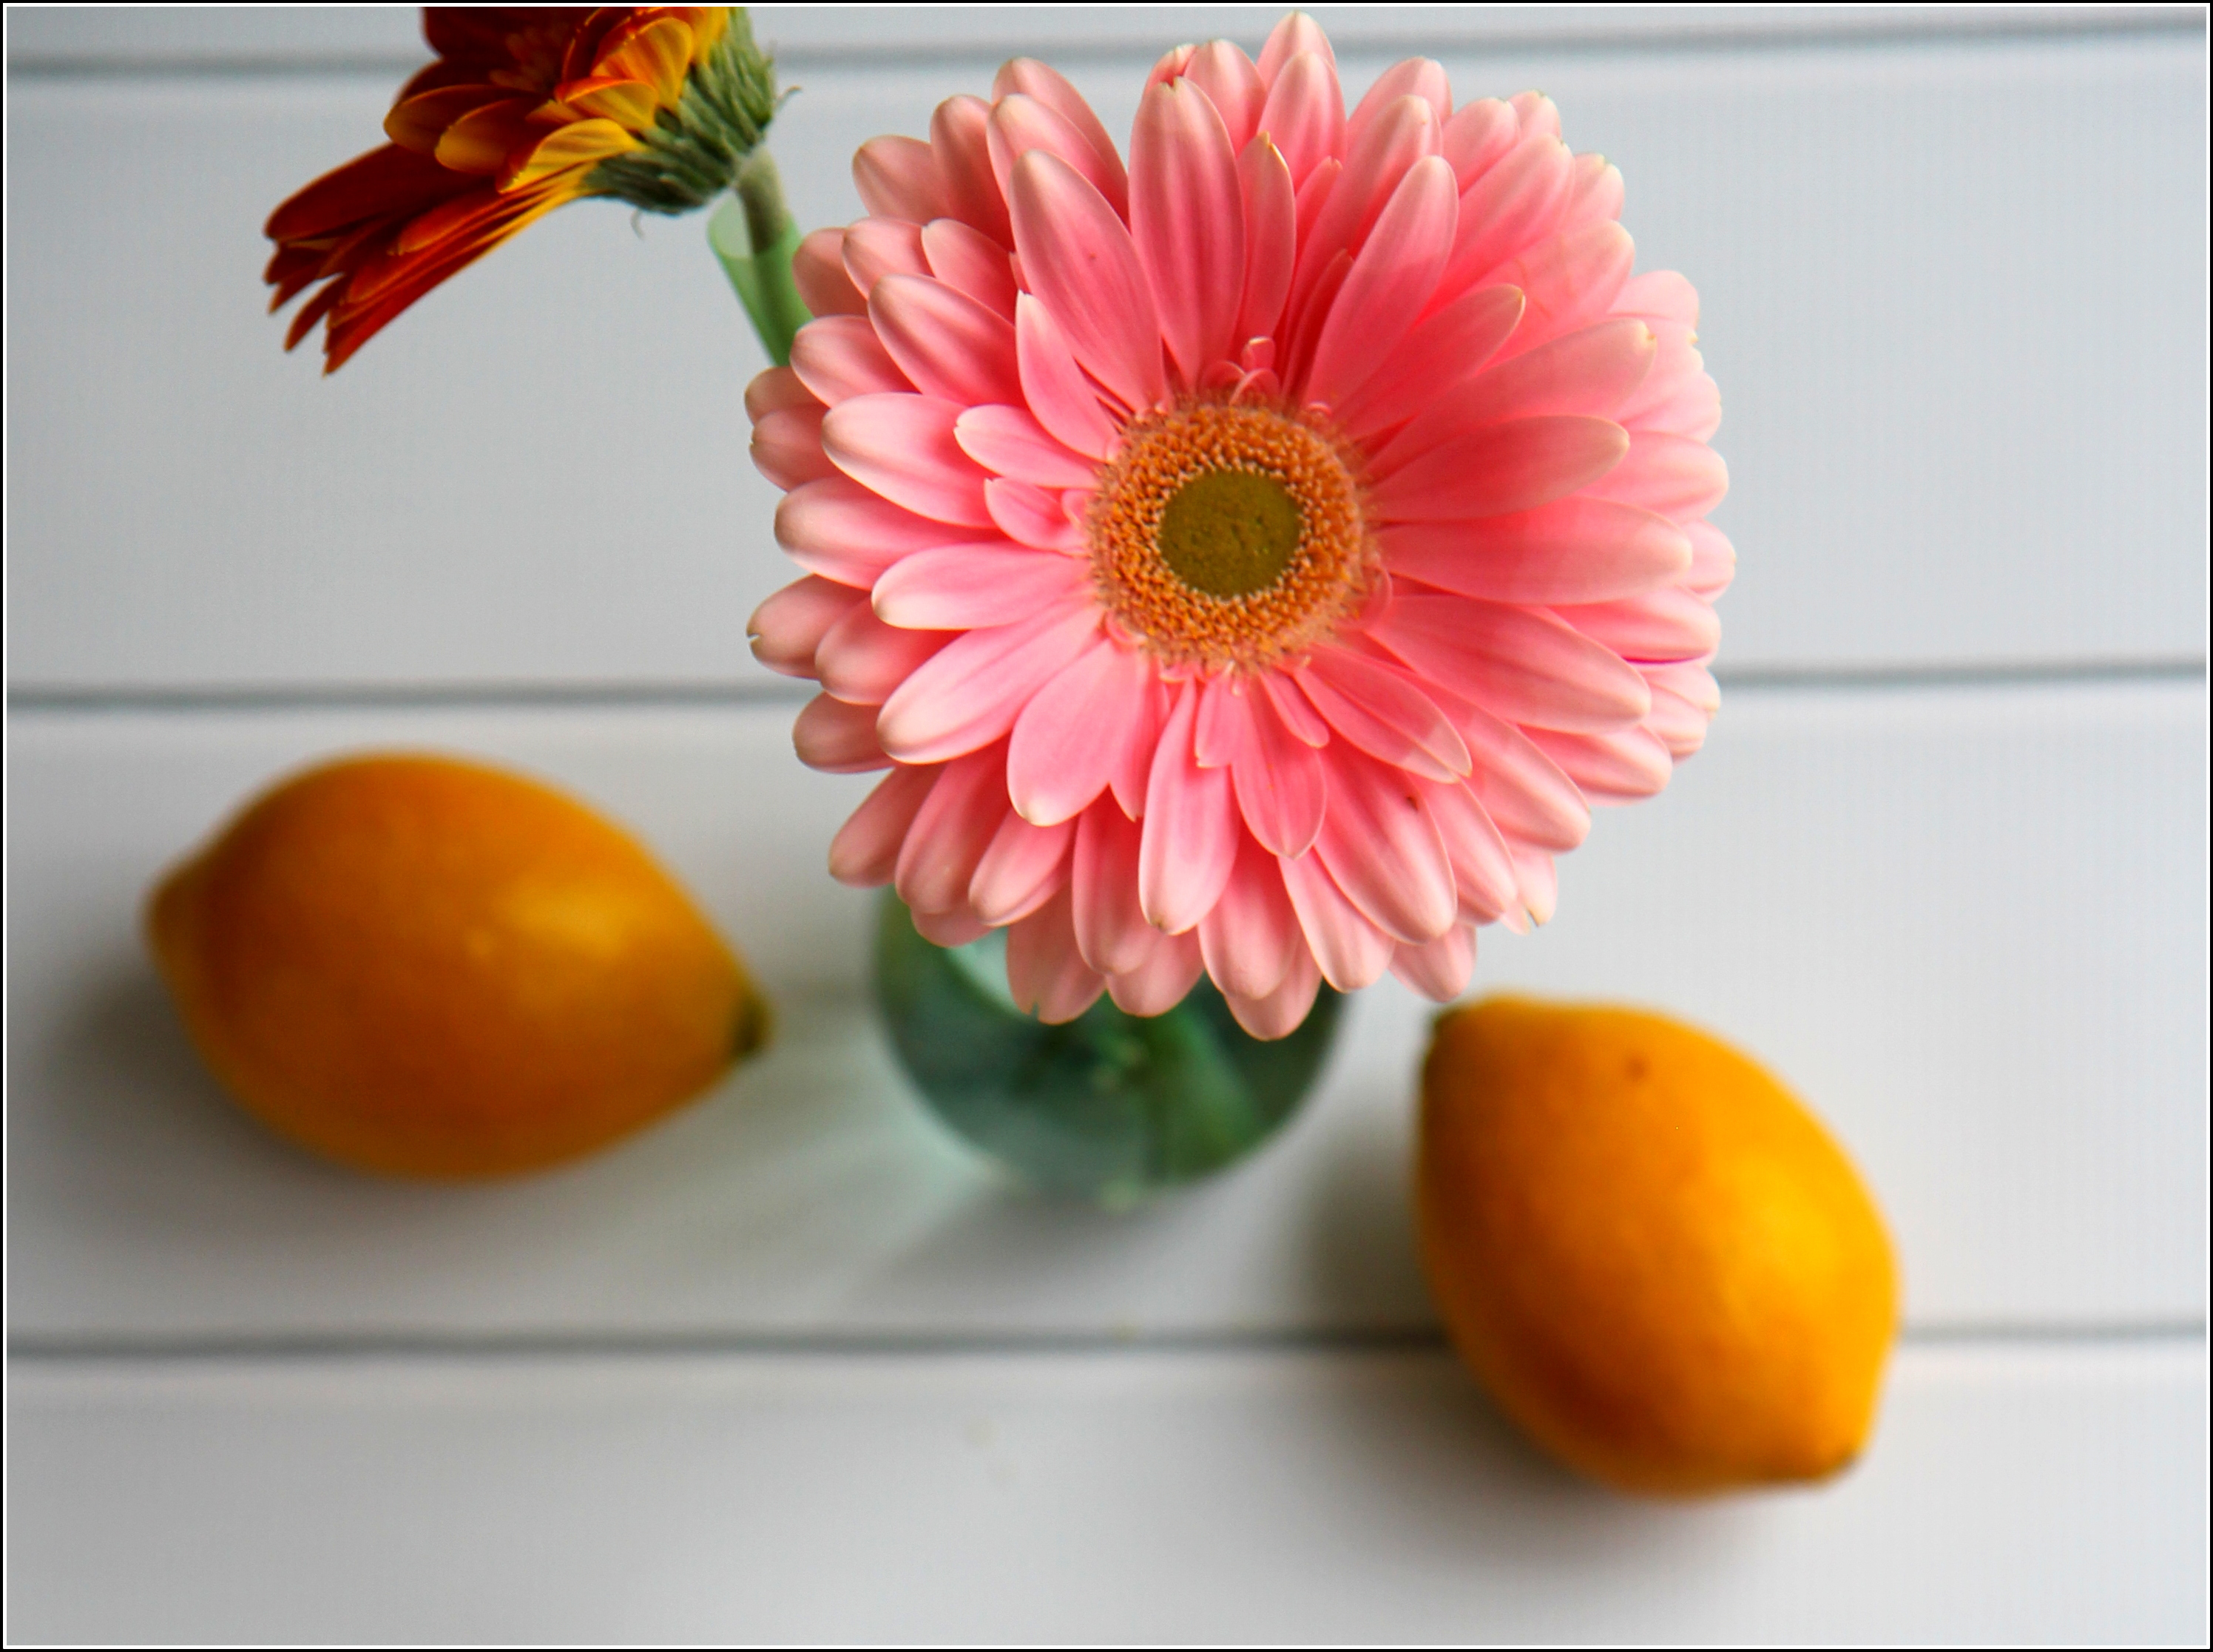 Pink Daisy and Lemons by Dena T BrayⒸ